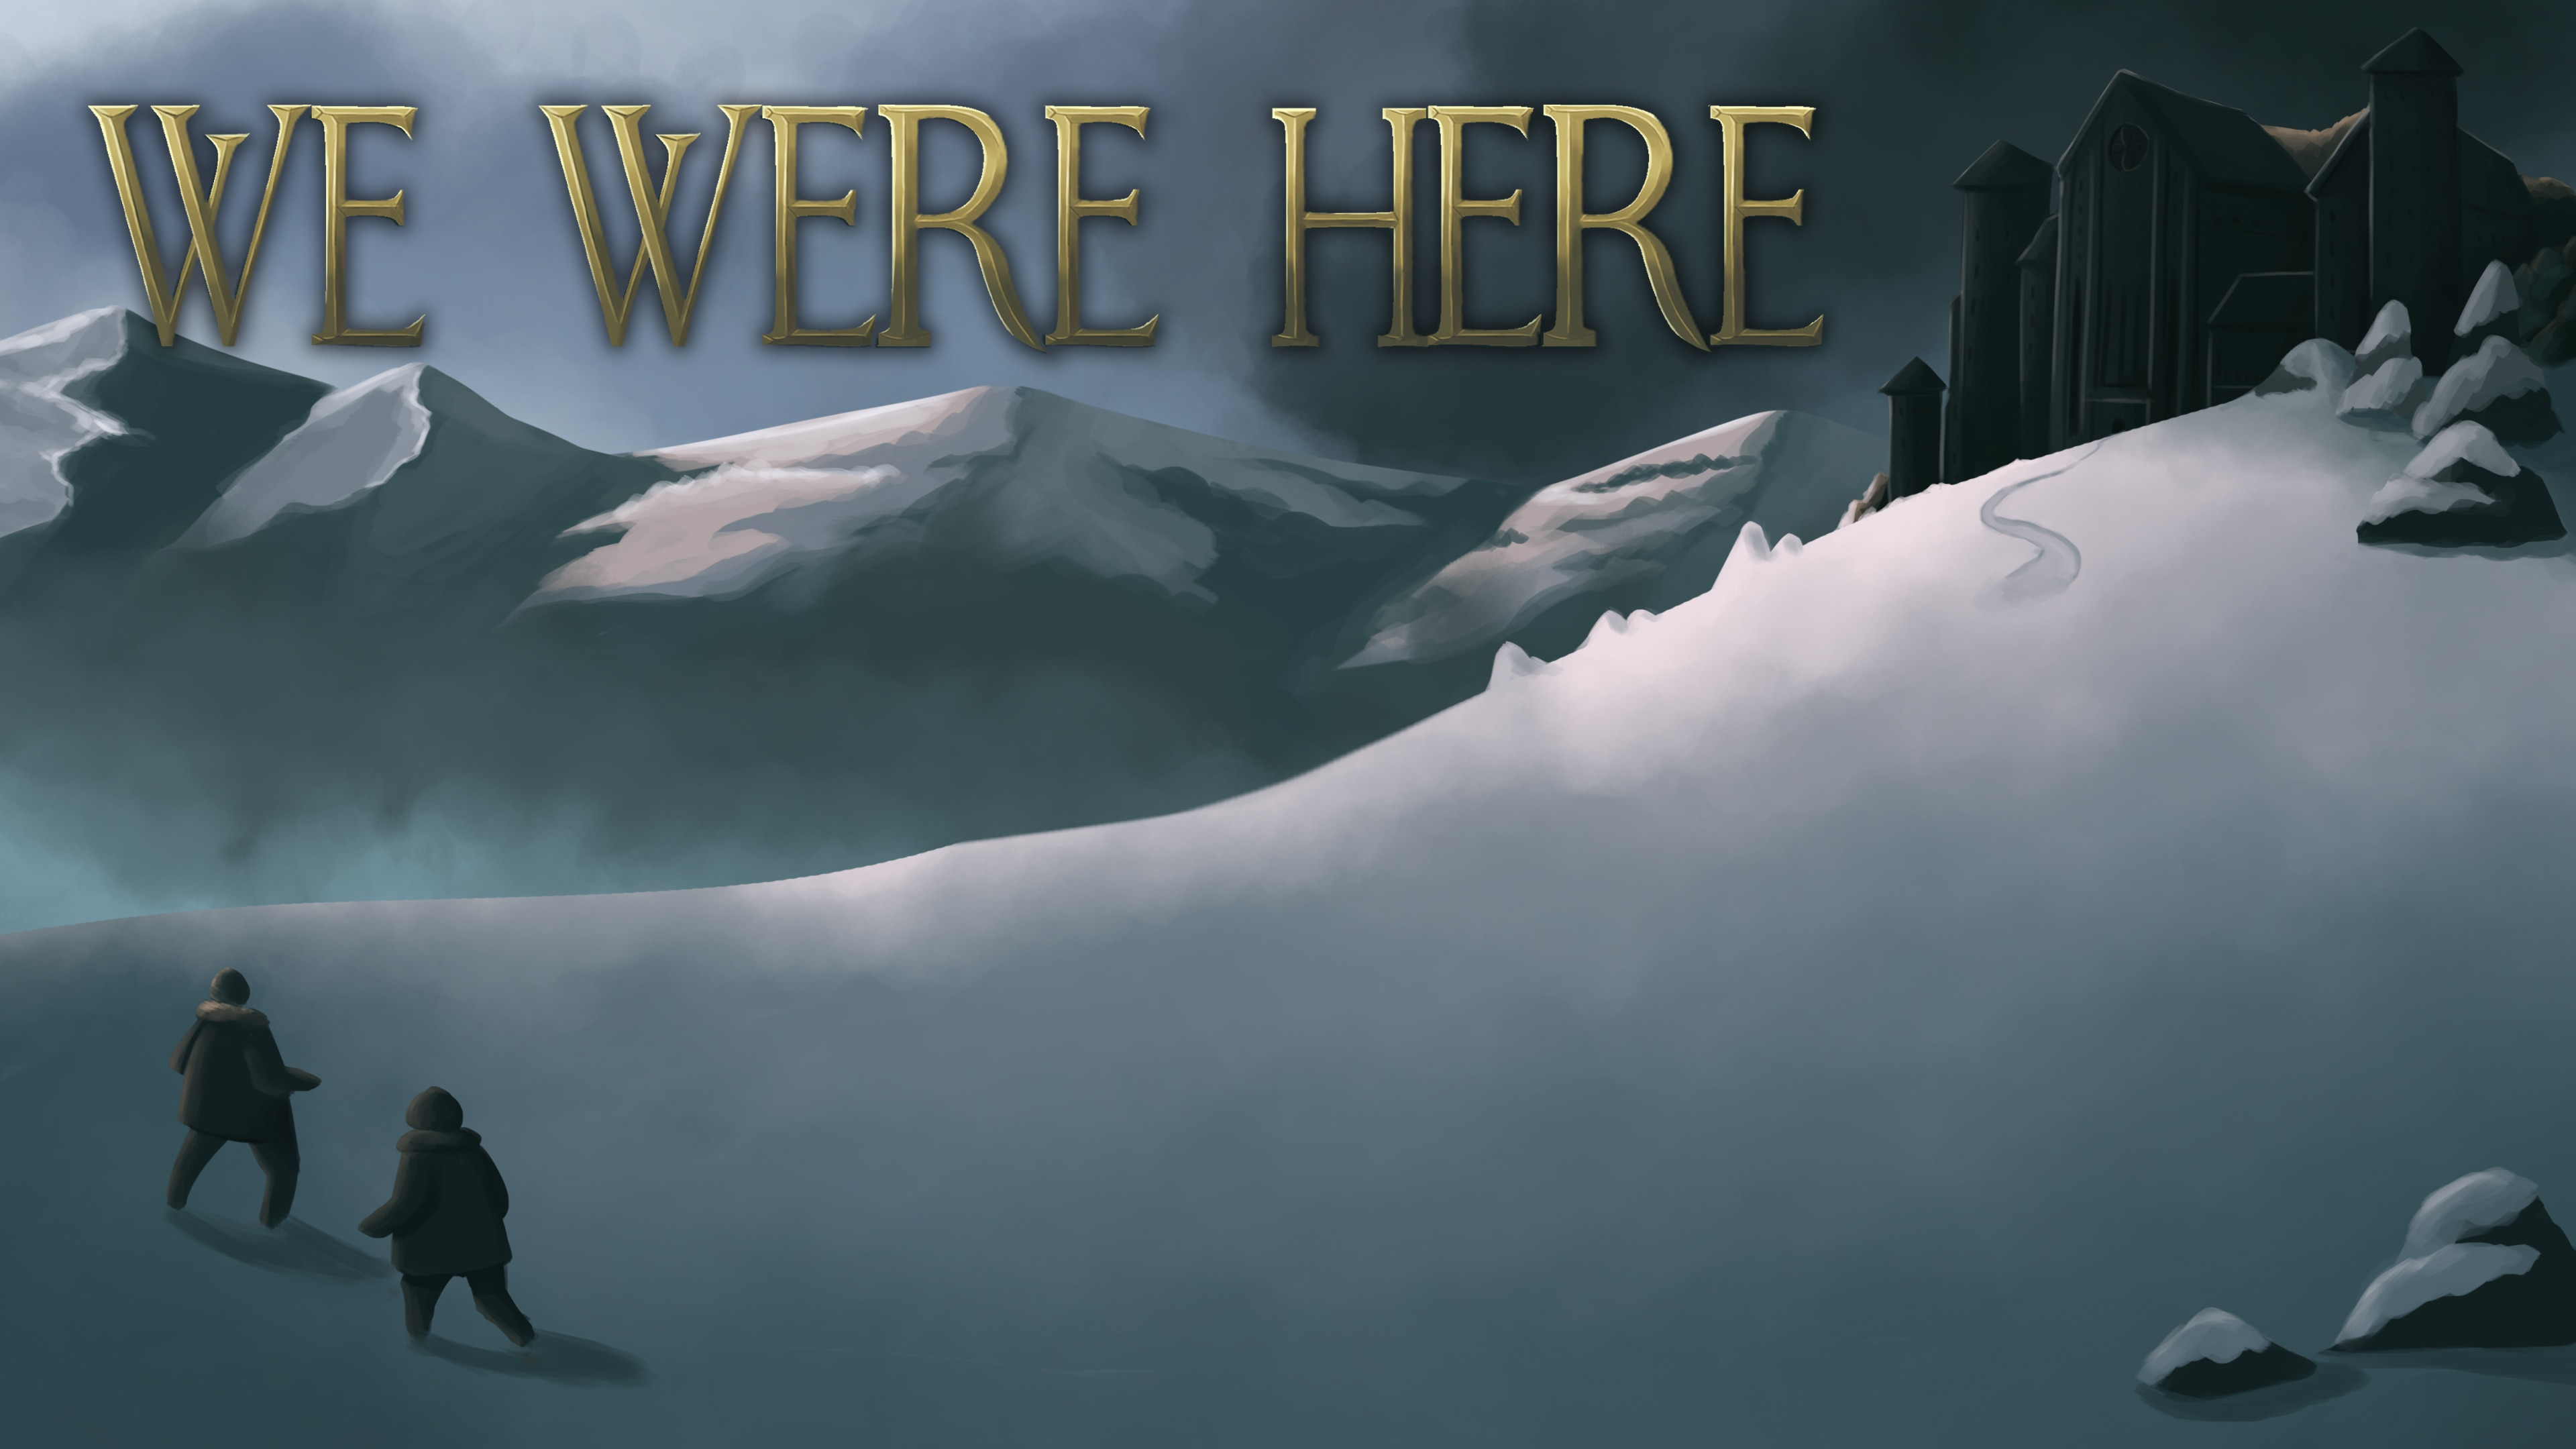 We Were Here (英语)